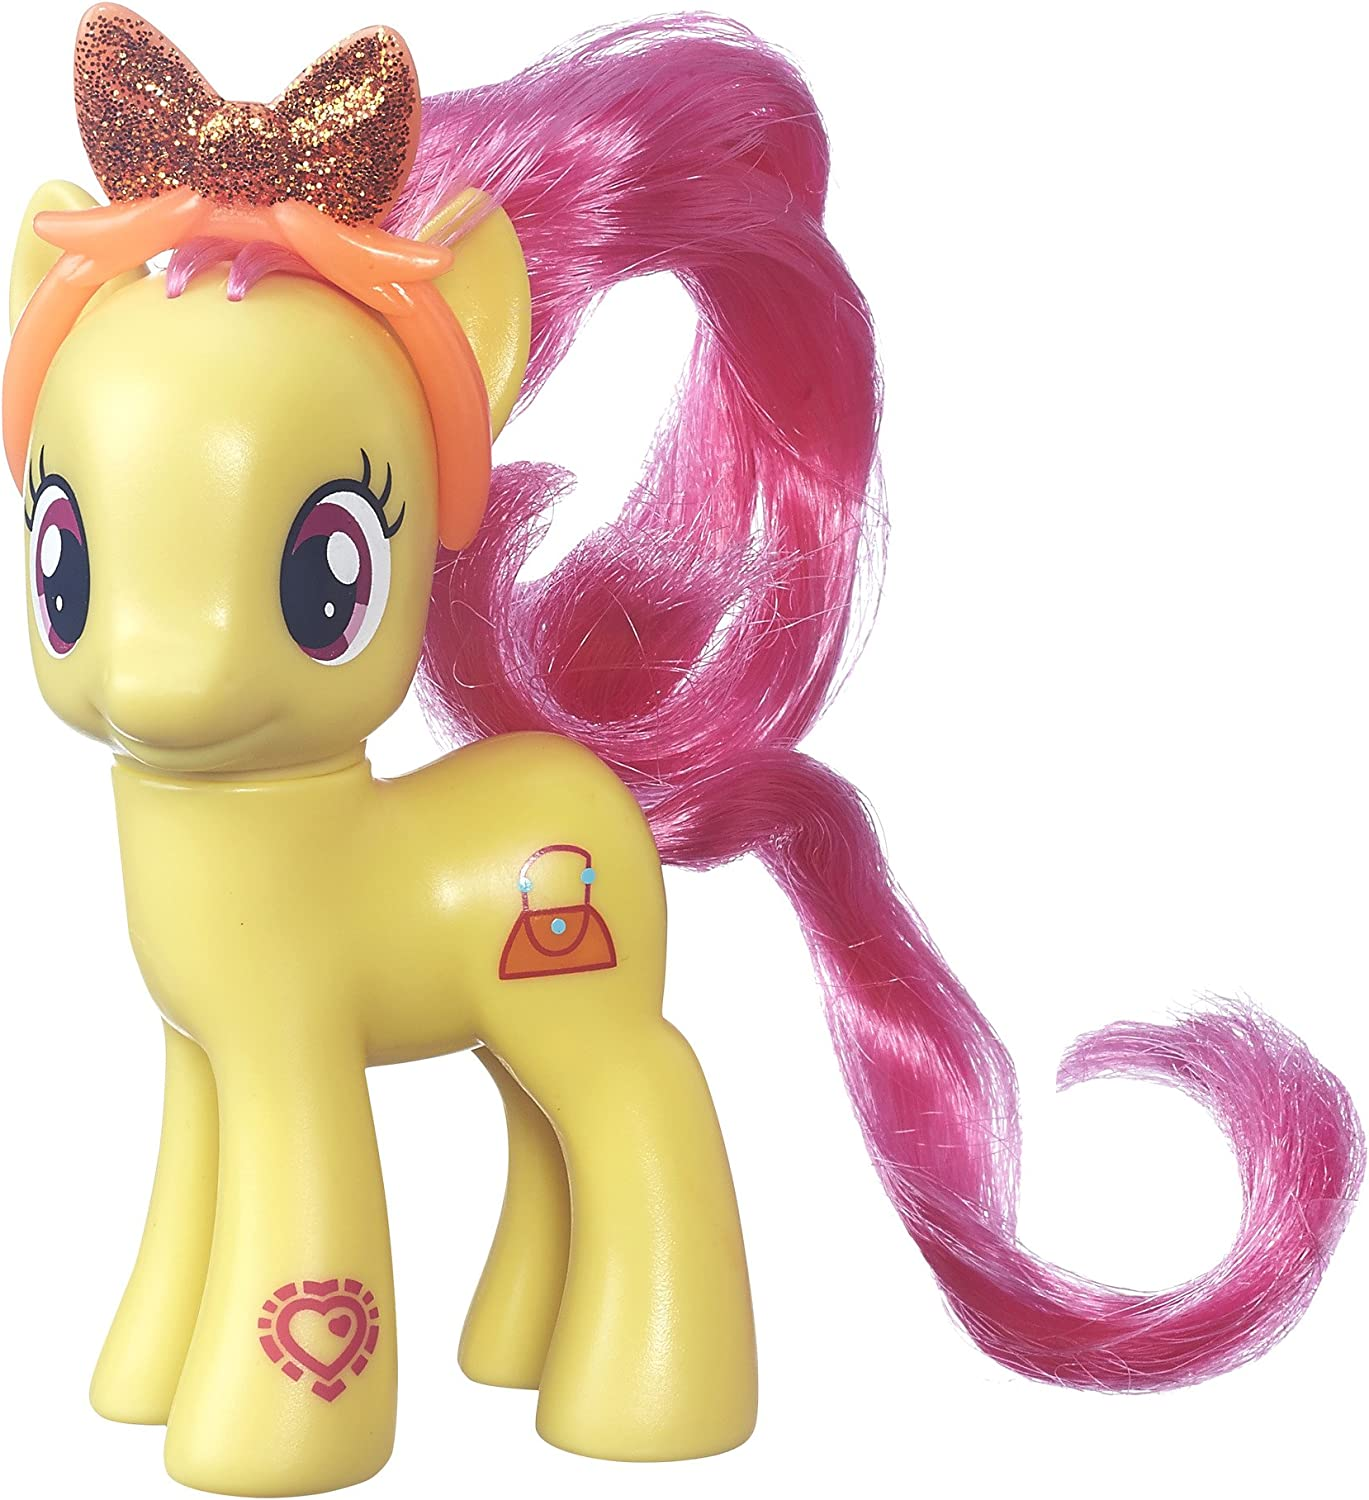 My Little Pony Friendship is Magic Pursey Pink Figure